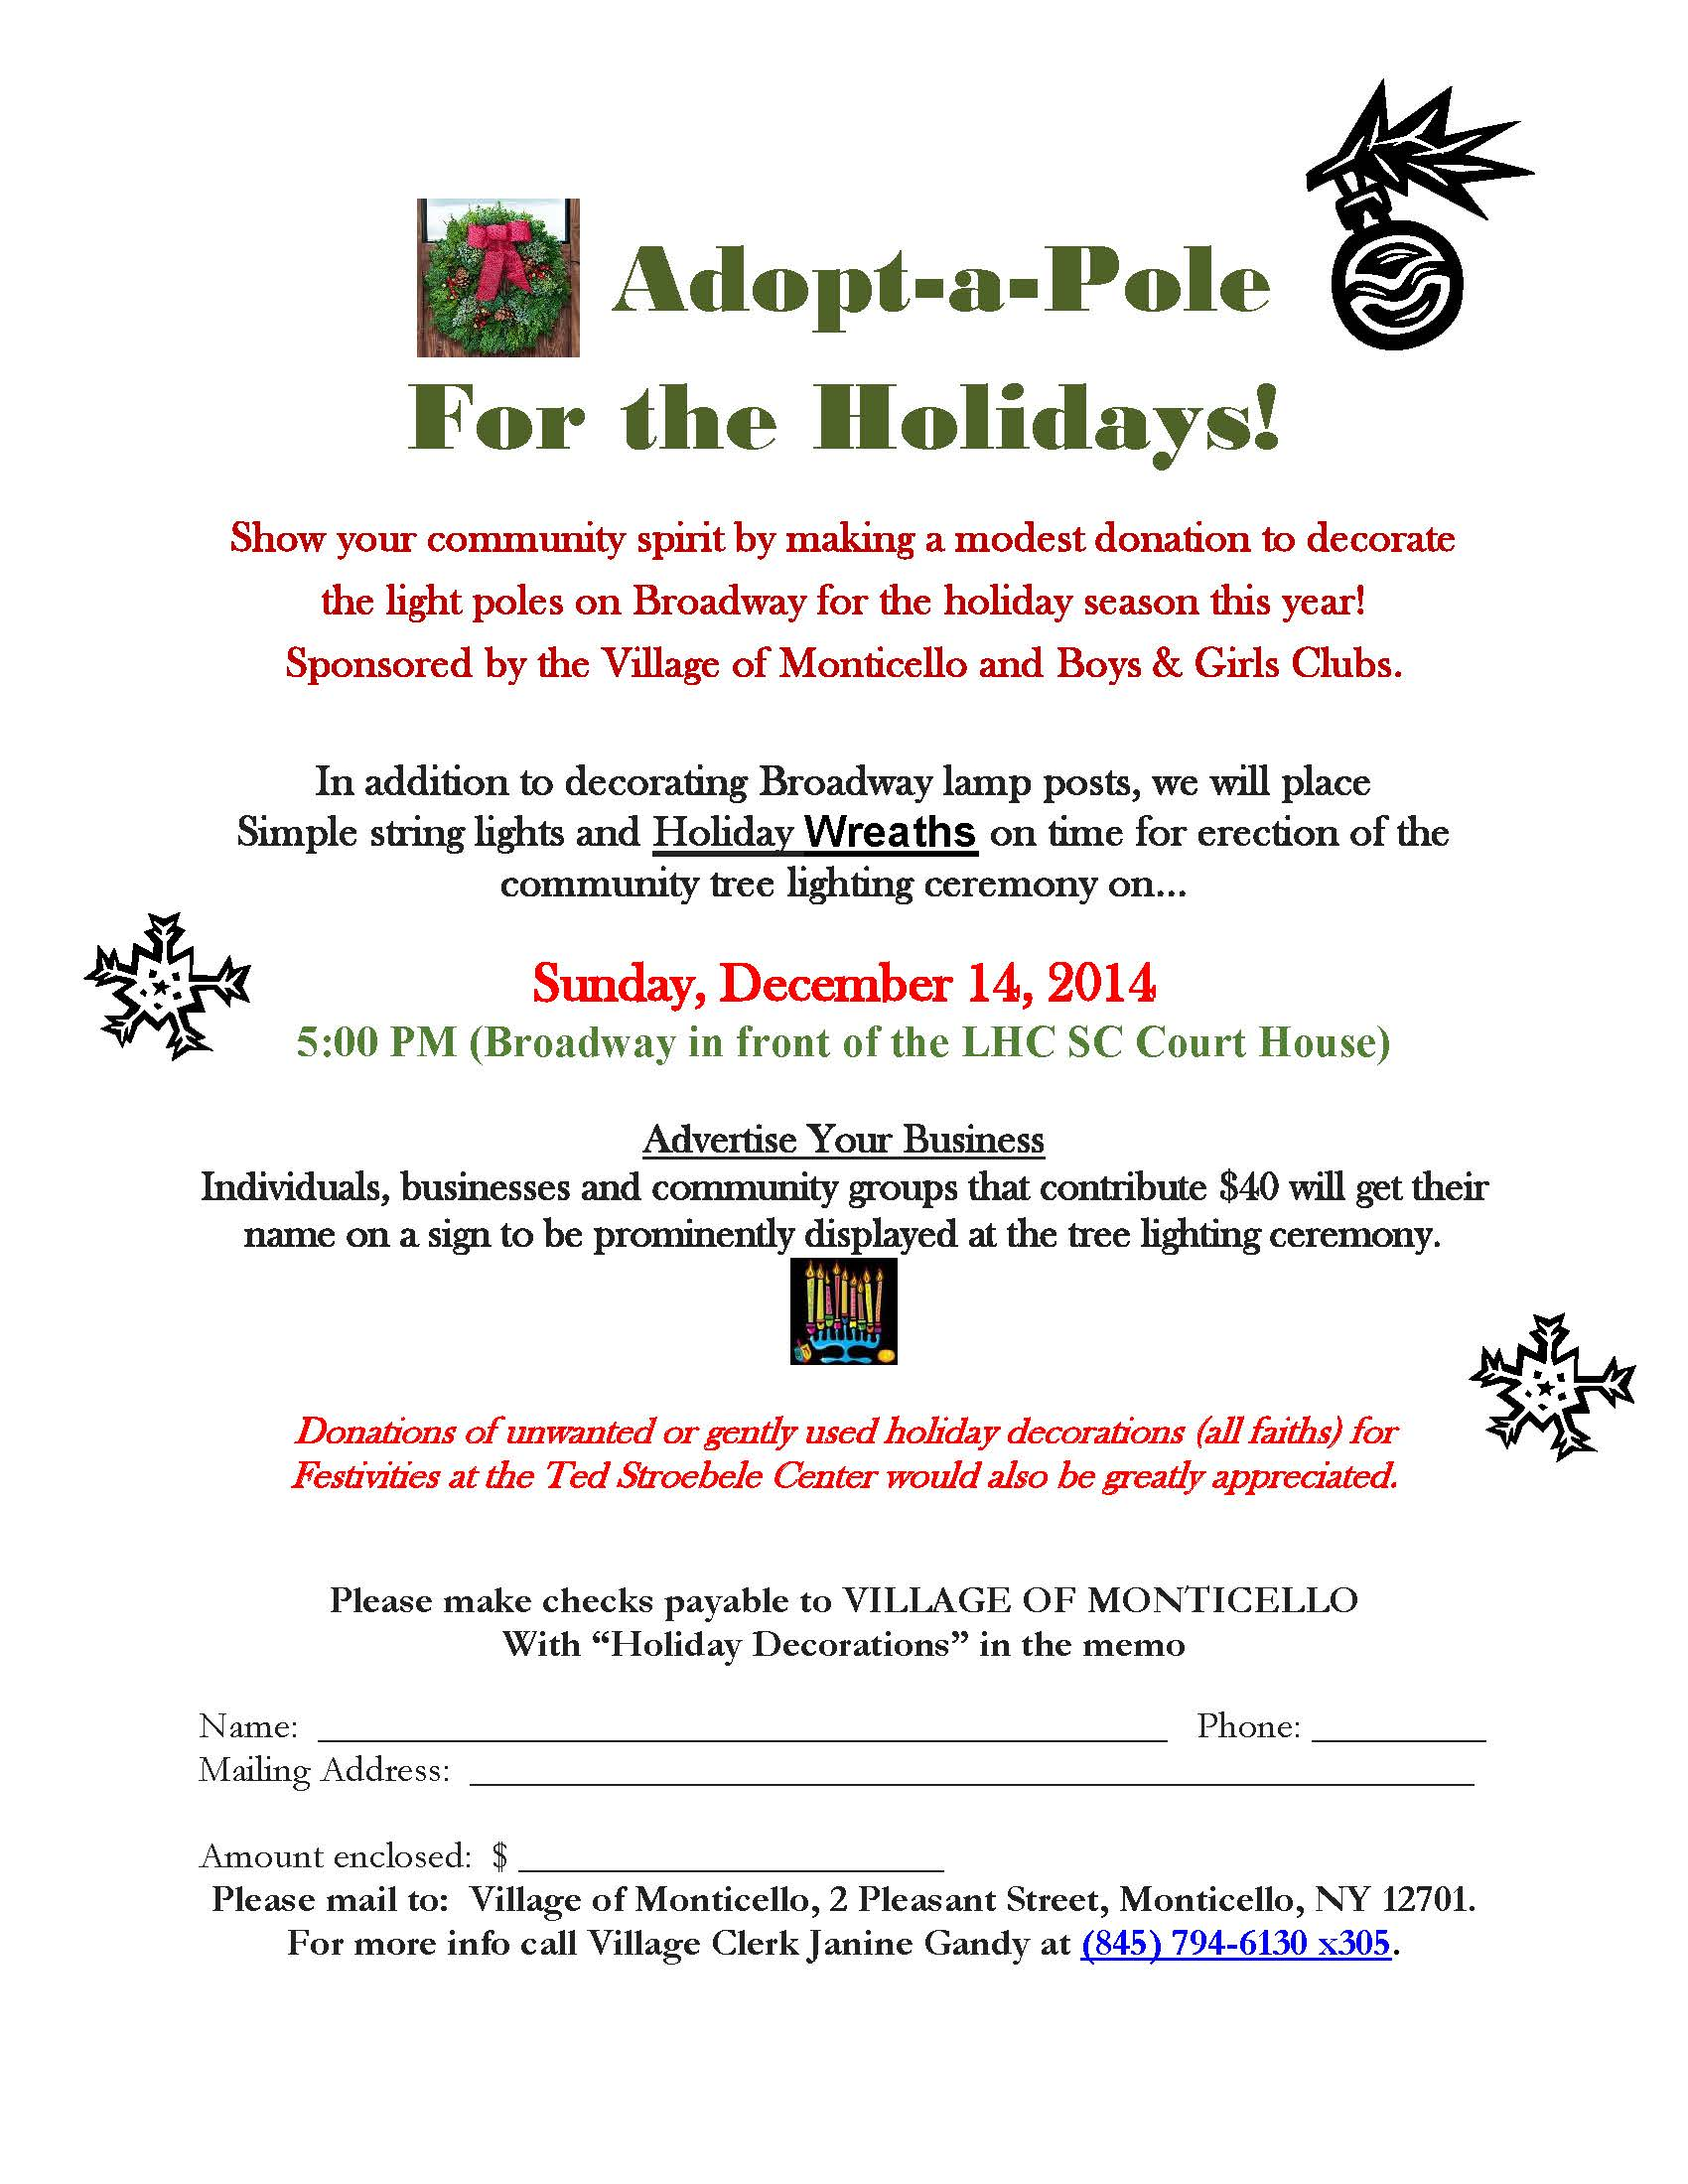 Monticello Santa Express flyer